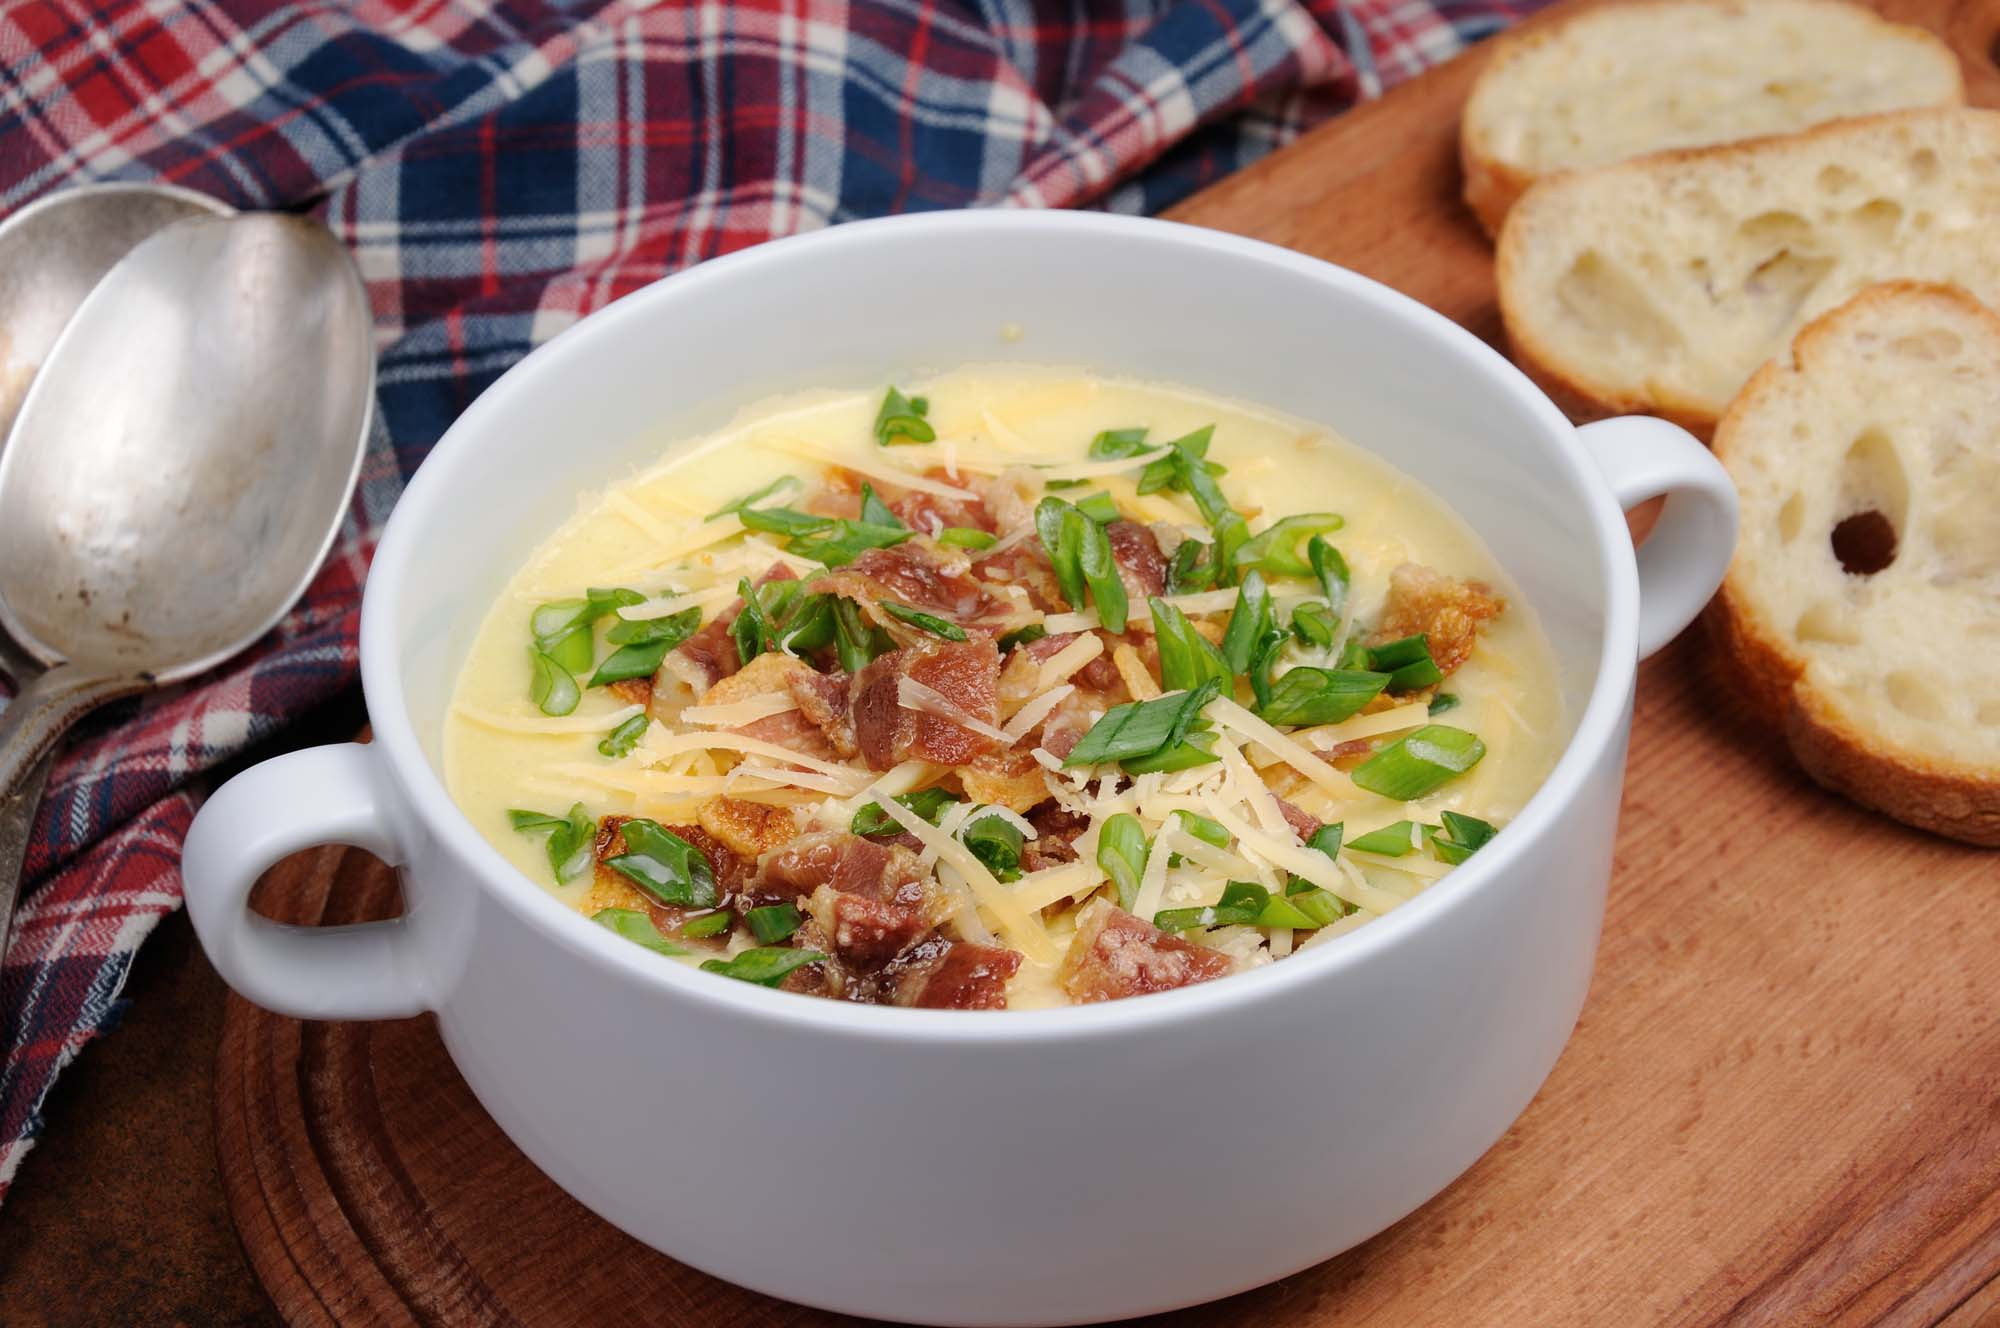 Ostesuppe med bacon